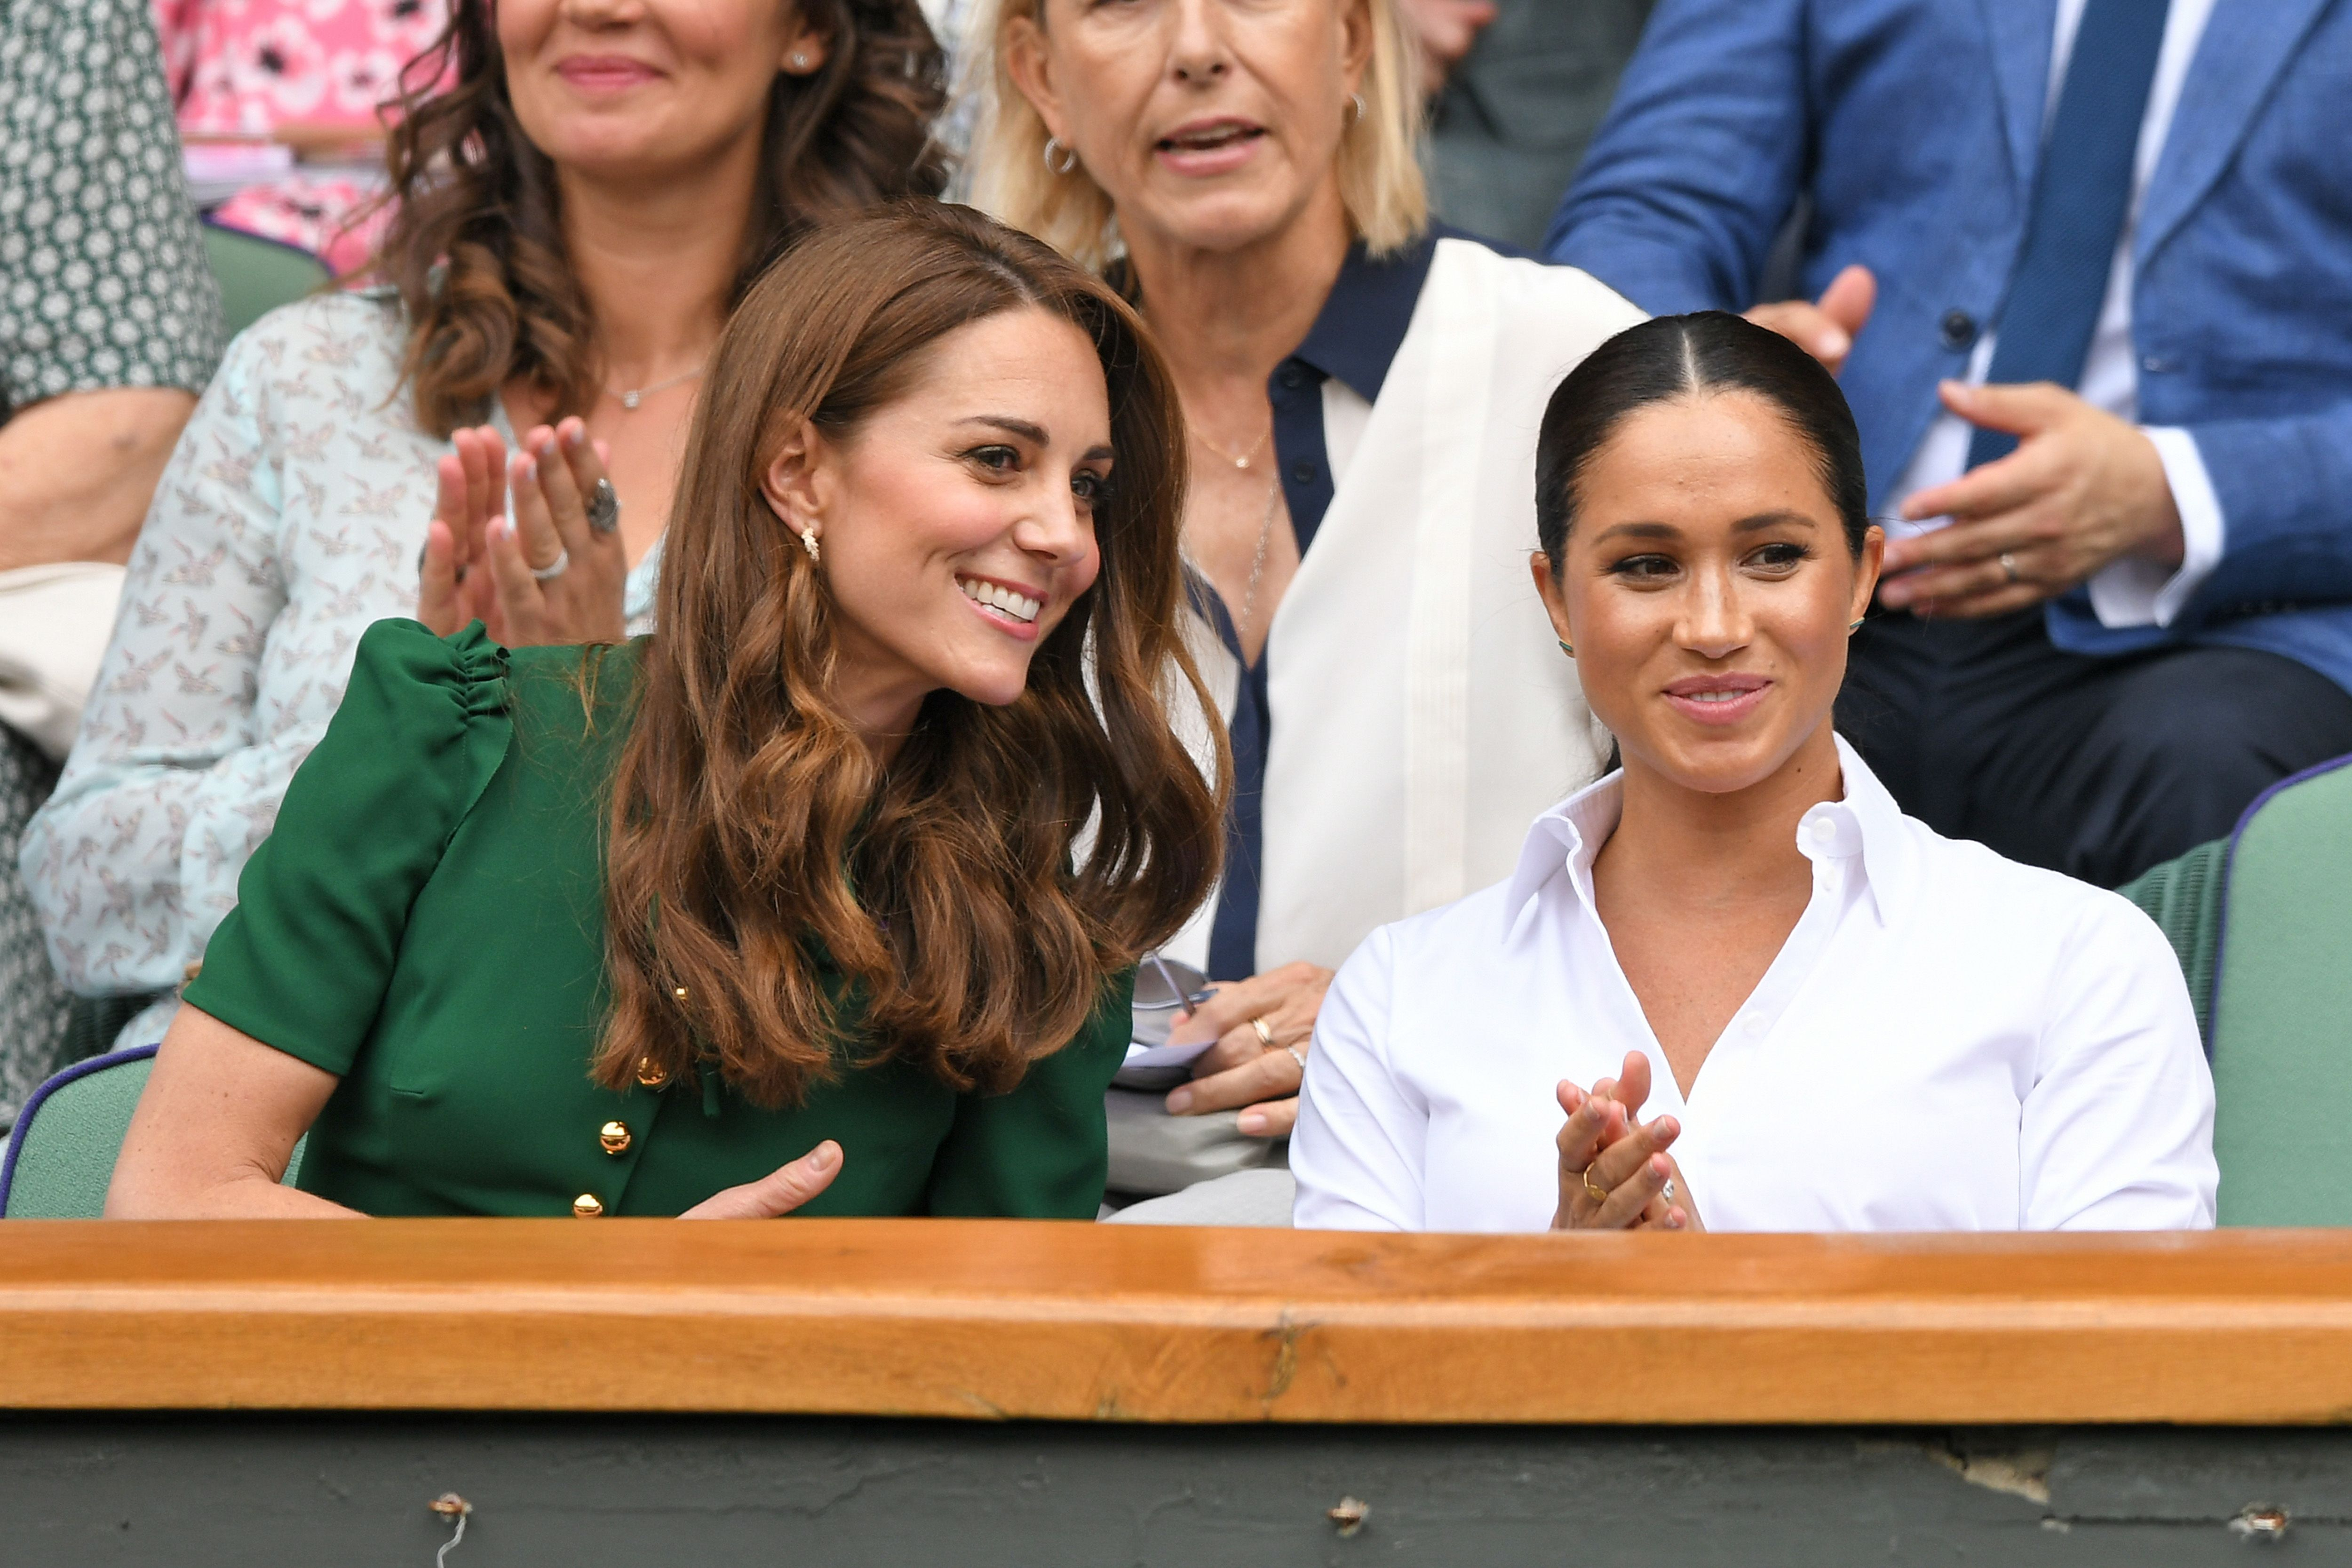 Why Meghan Markle and Kate Middleton Are Reportedly 'Civil' but 'Will Never Be Best Friends'